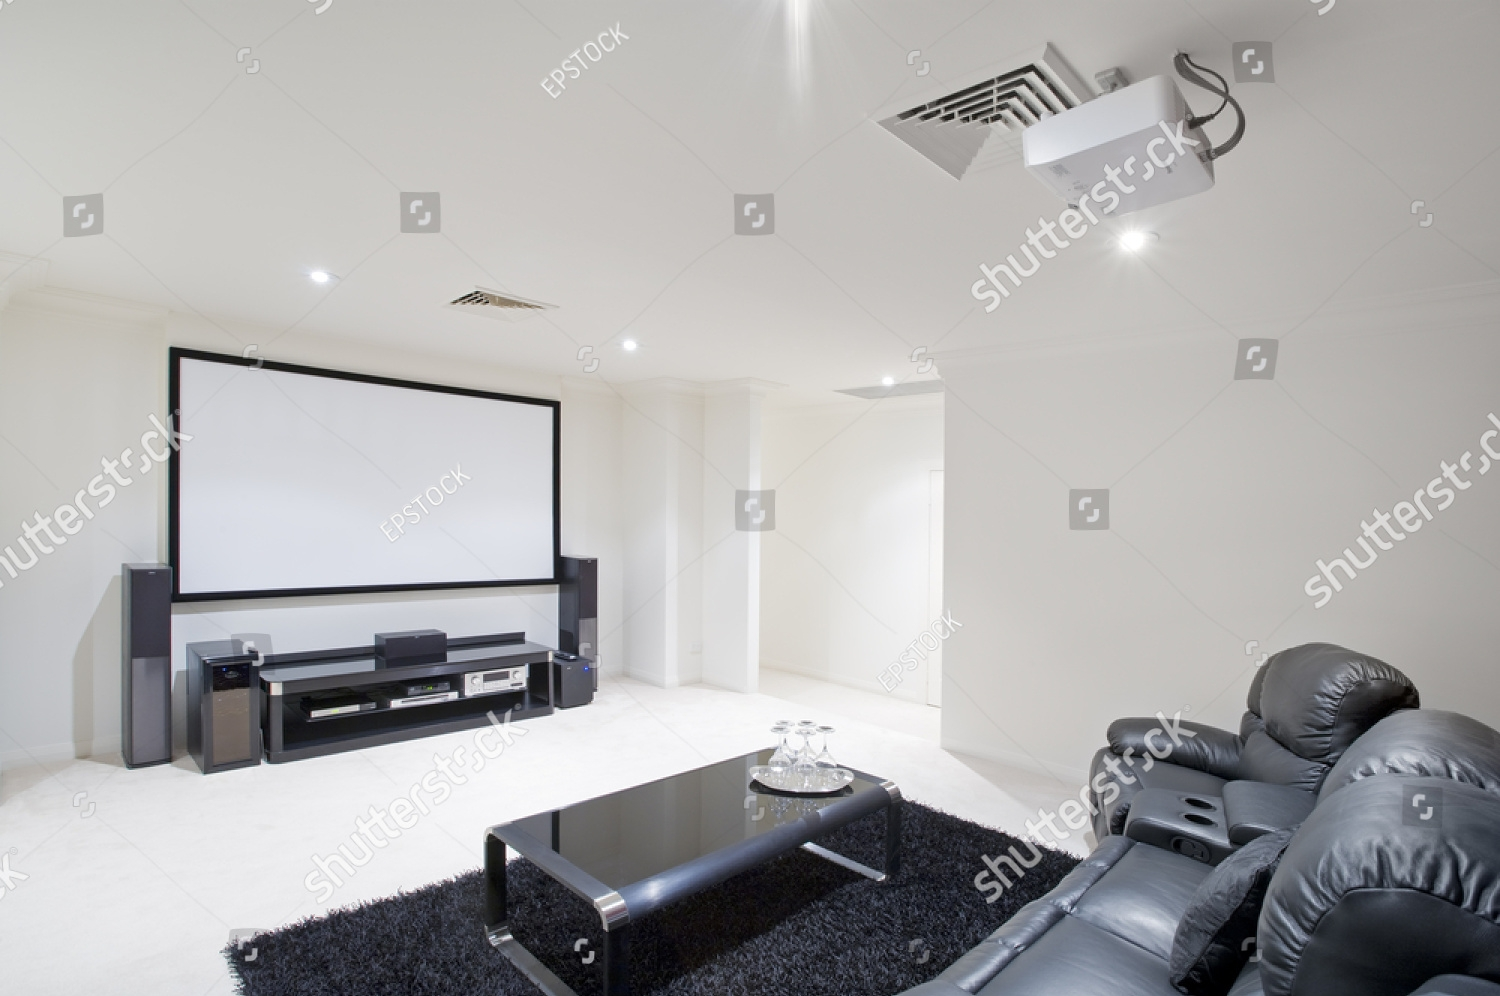 stock-photo-home-theater-room-with-black-leather-recliner-chairs-black-rug-and-table-with-wine-glasses-41025172.jpg